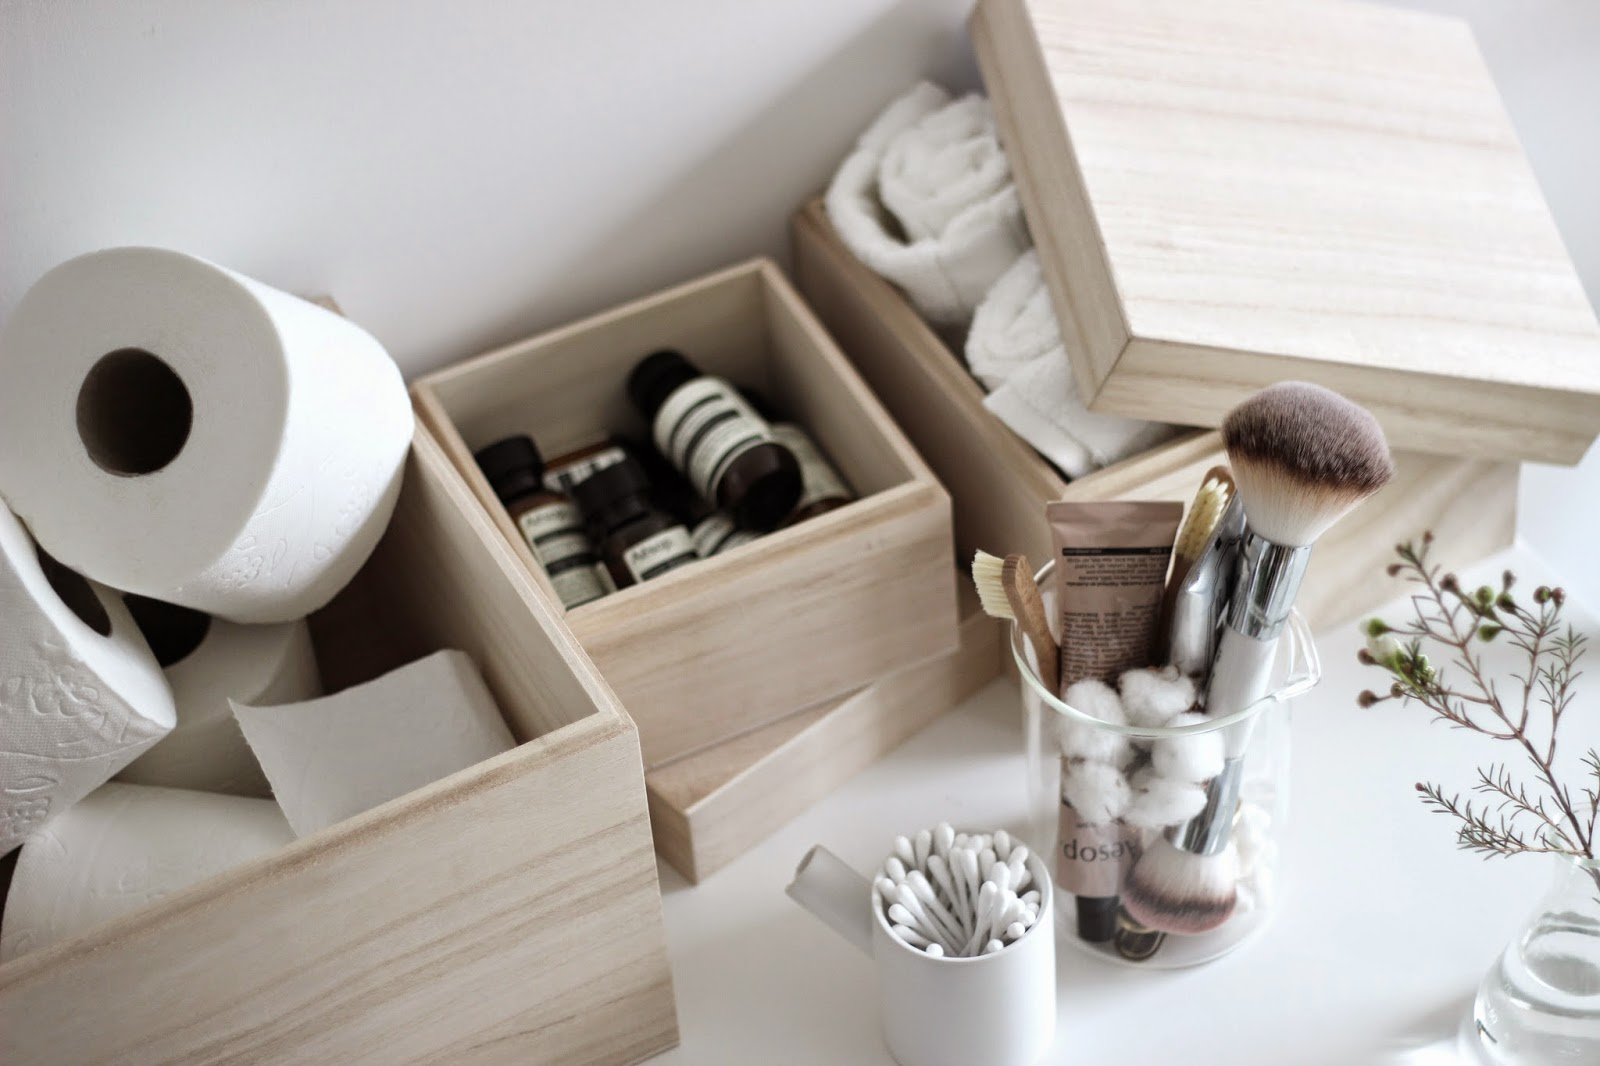 bathroom styling with nomess balsa boxes via http://www.scandinavianlovesong.com/